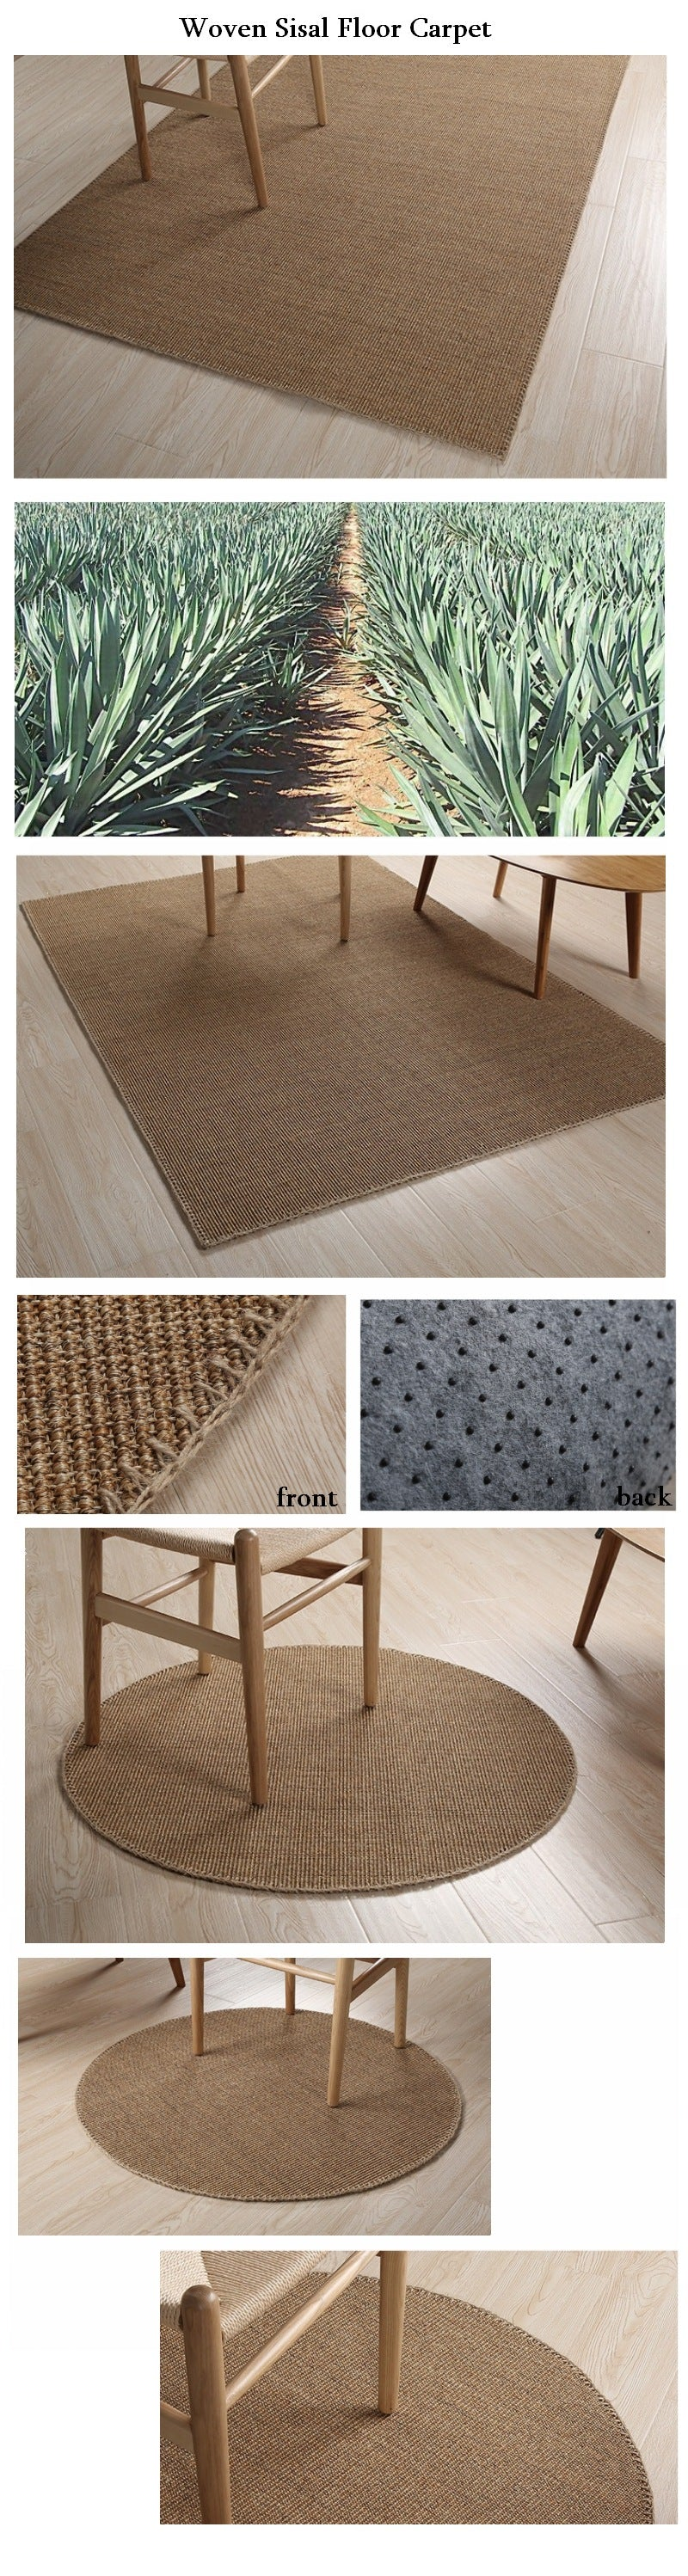 Large Sisal Carpet, Woven Carpet, Floor Carpet and Rugs